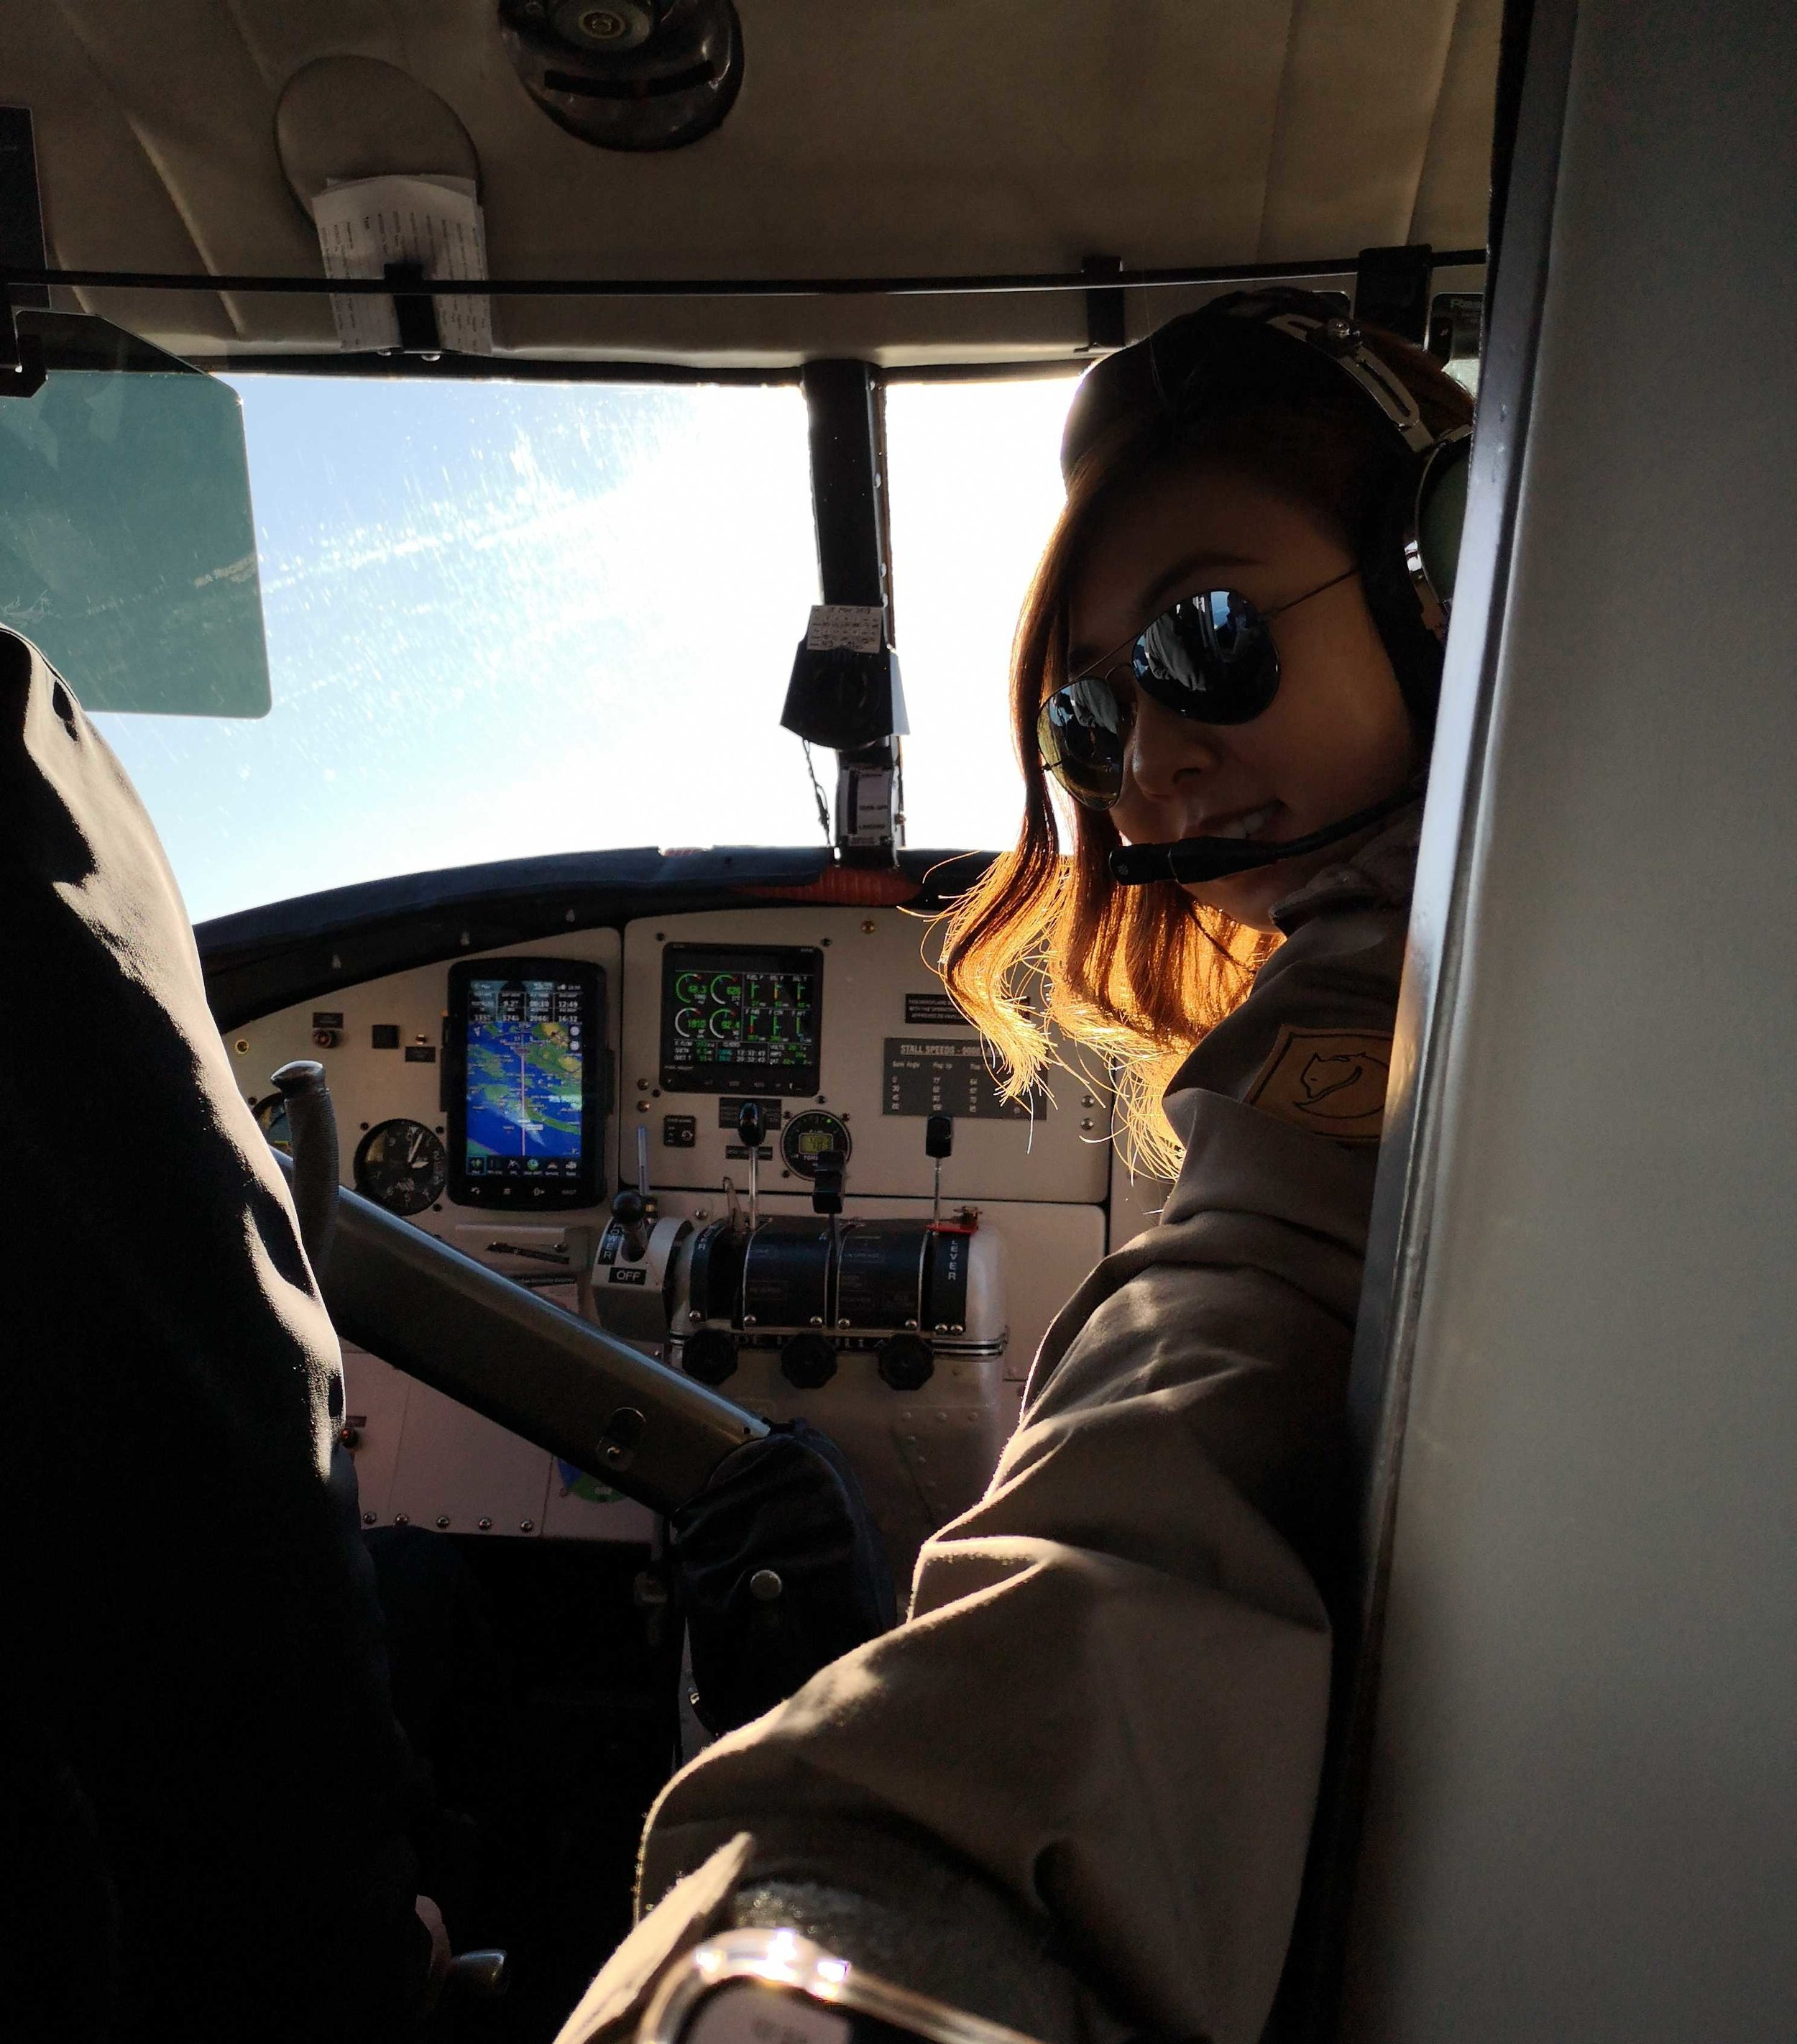 Our designer Judy flew to Vancouver in the co-pilot seat for a design meeting with the team Harbour Air.